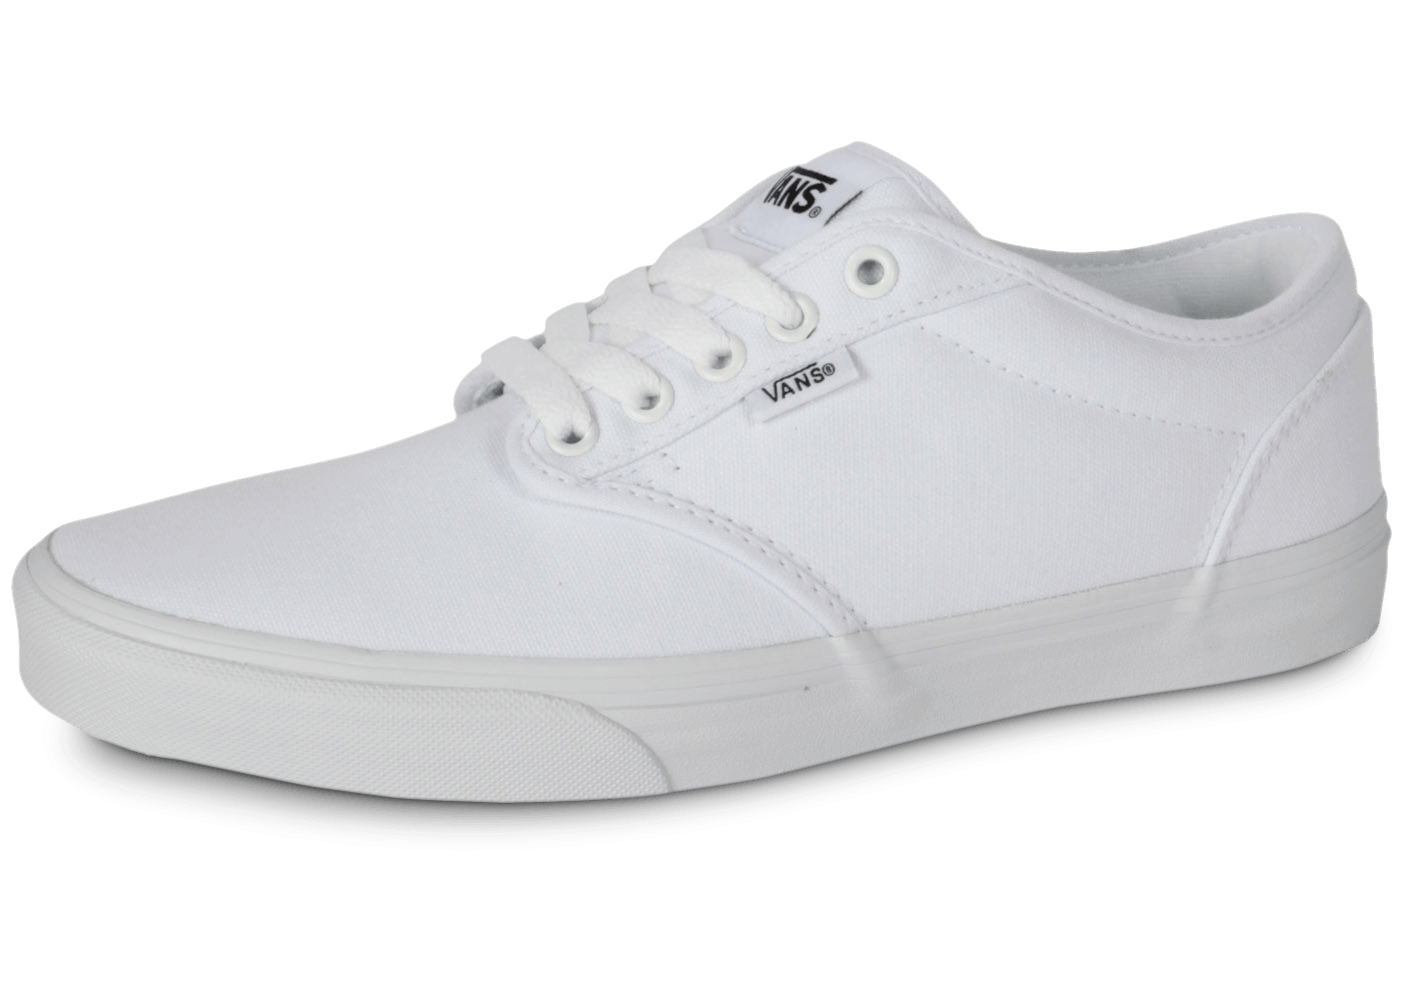 Vans Atwood Toile Blanche